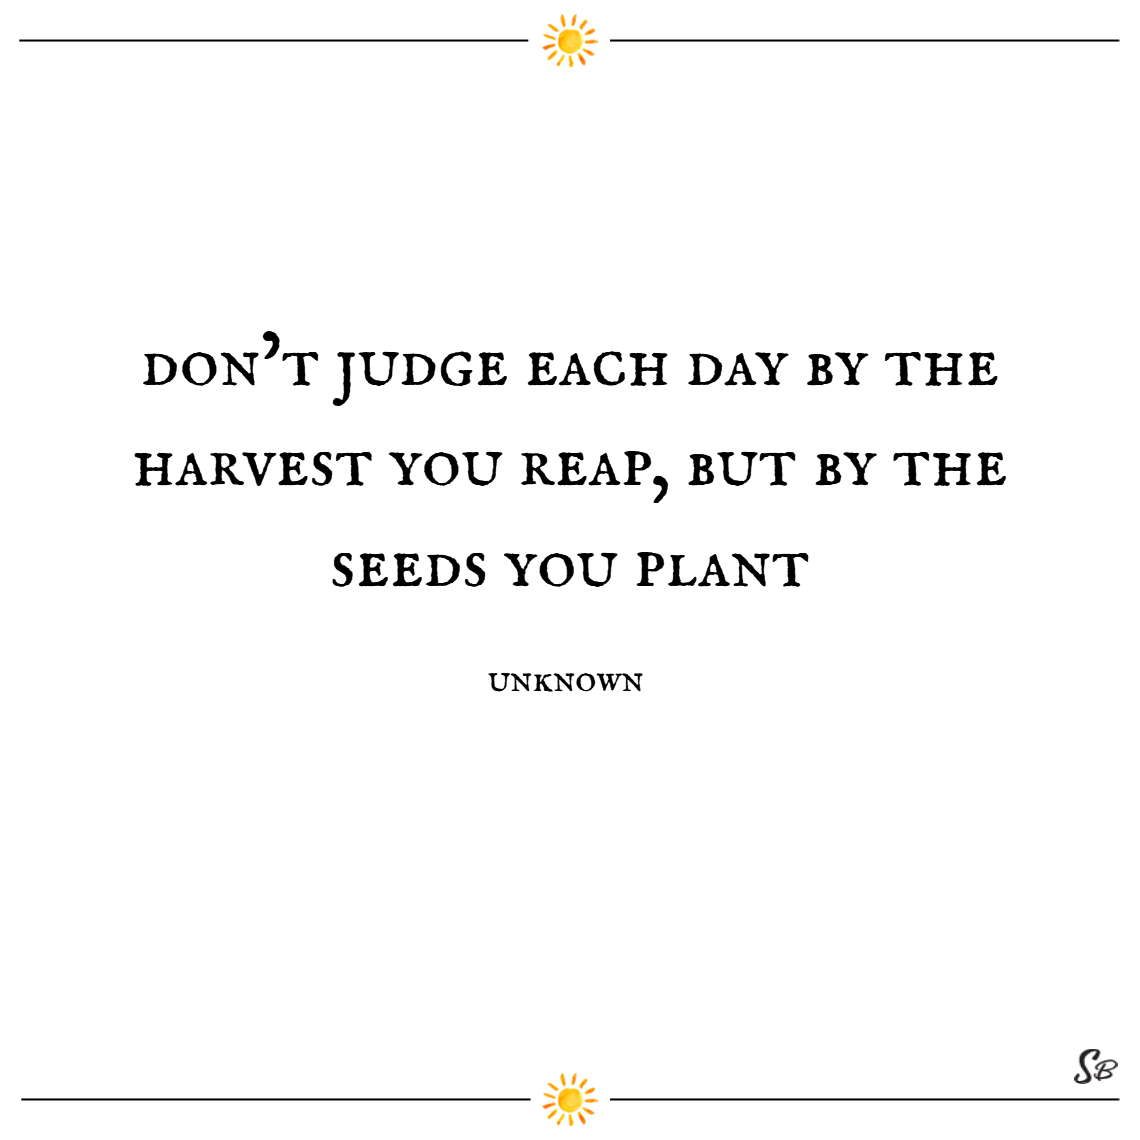 Don't judge each day by the harvest you reap, but by the seeds you plant. – unknown